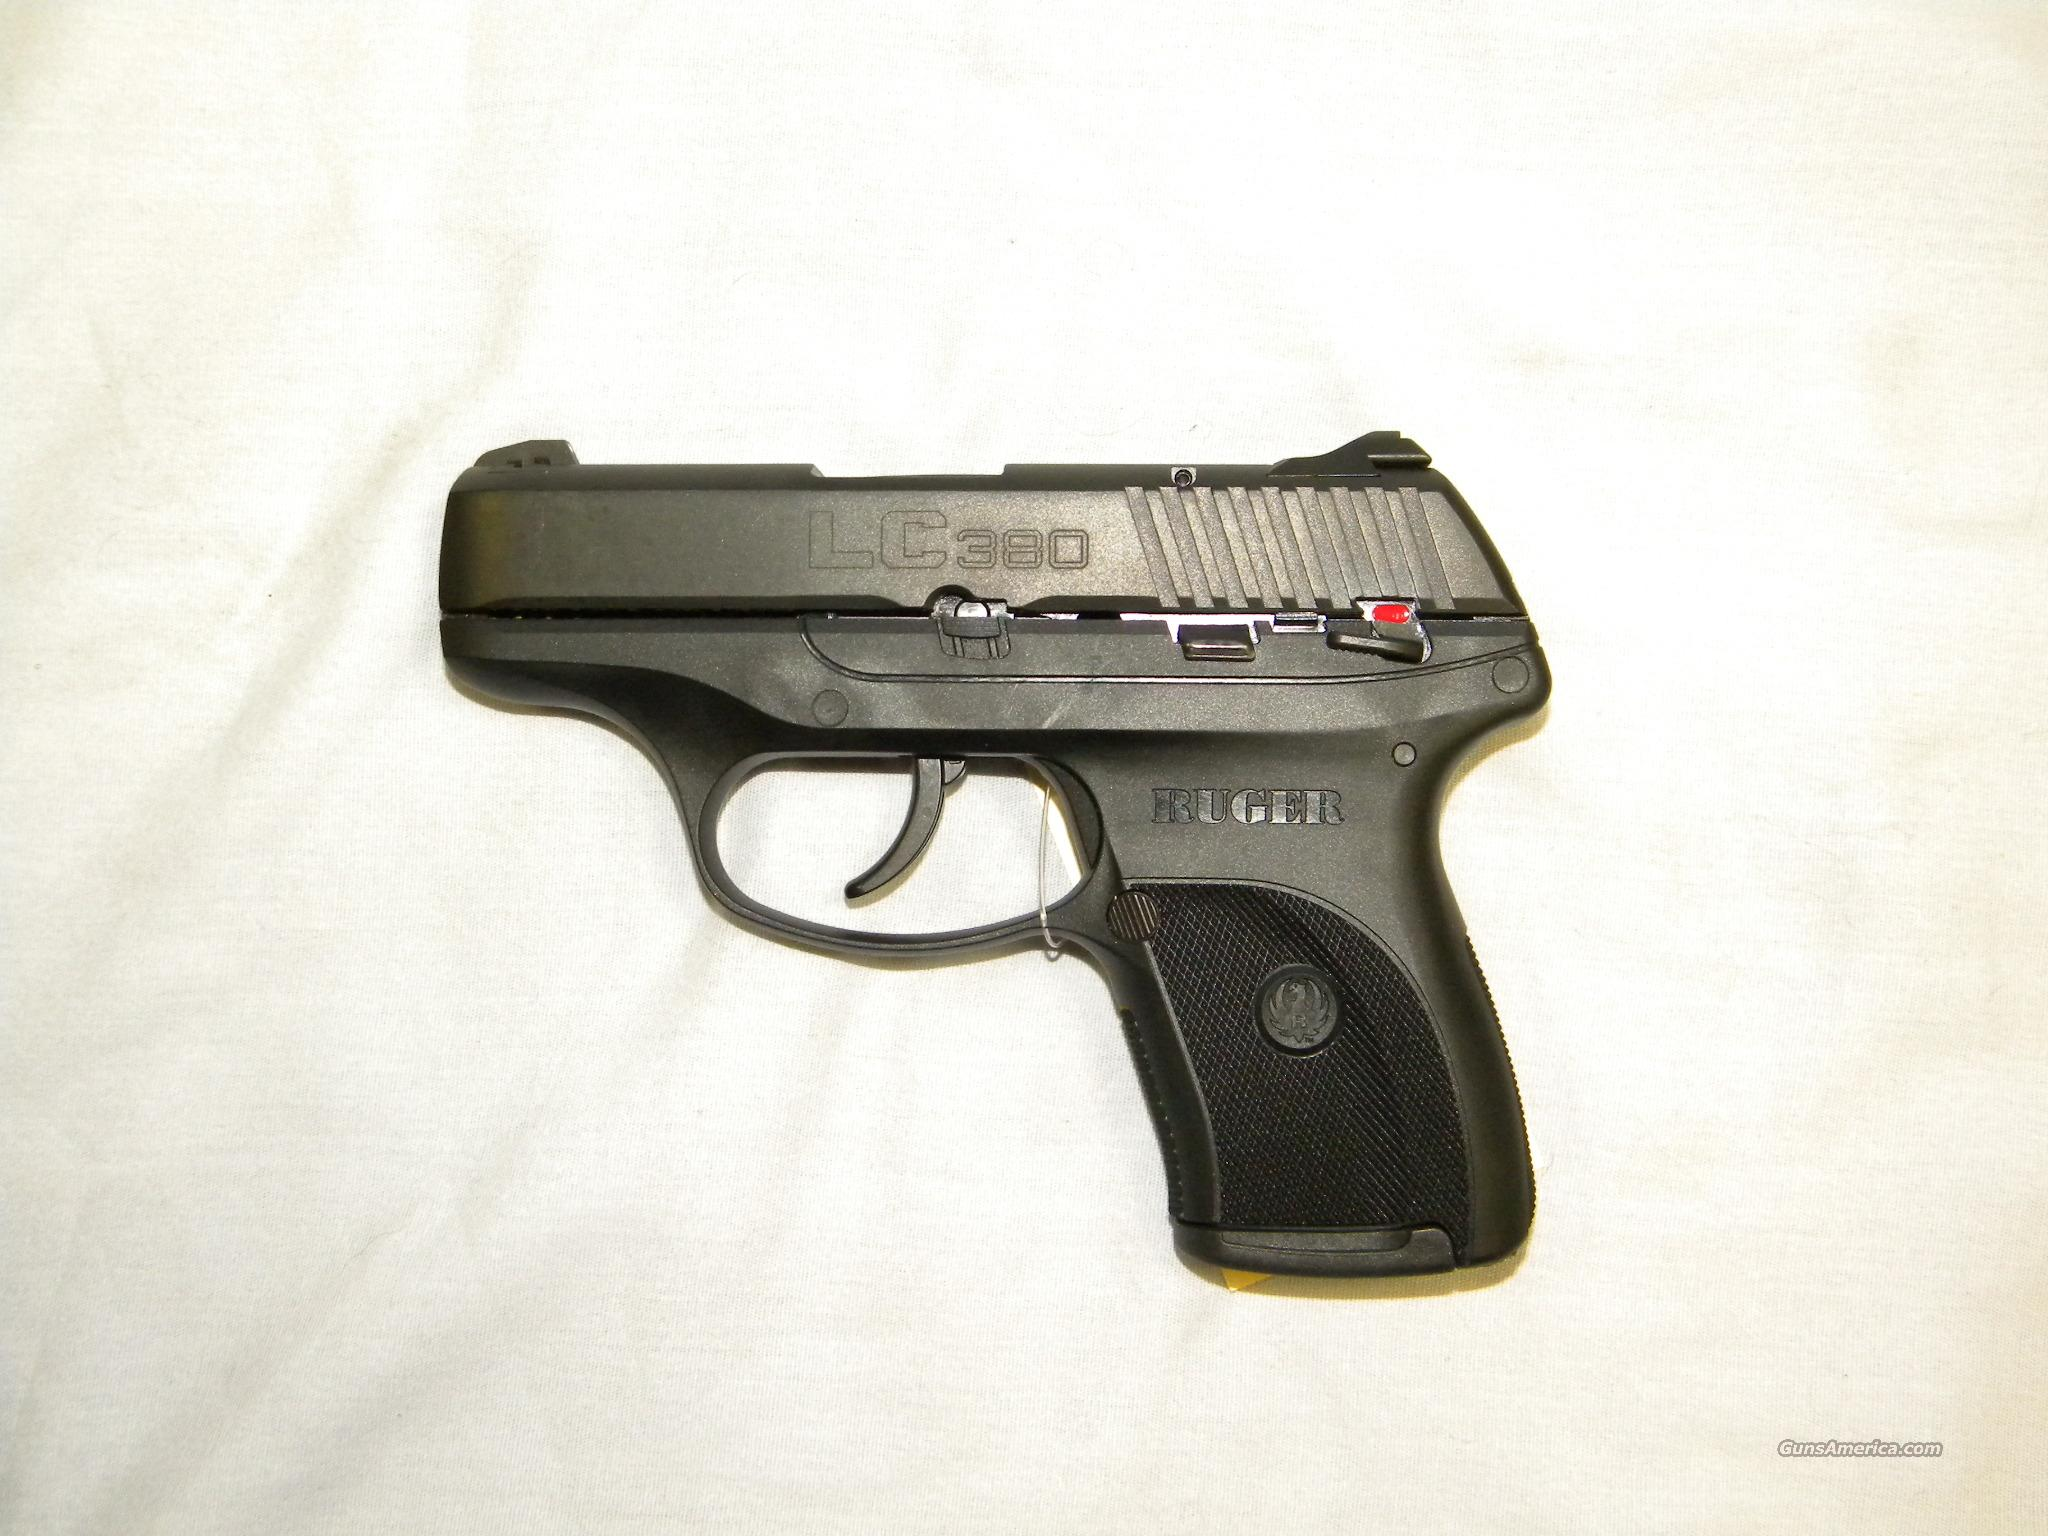 Ruger LC-380, .380 ACP  Guns > Pistols > Ruger Semi-Auto Pistols > LCP